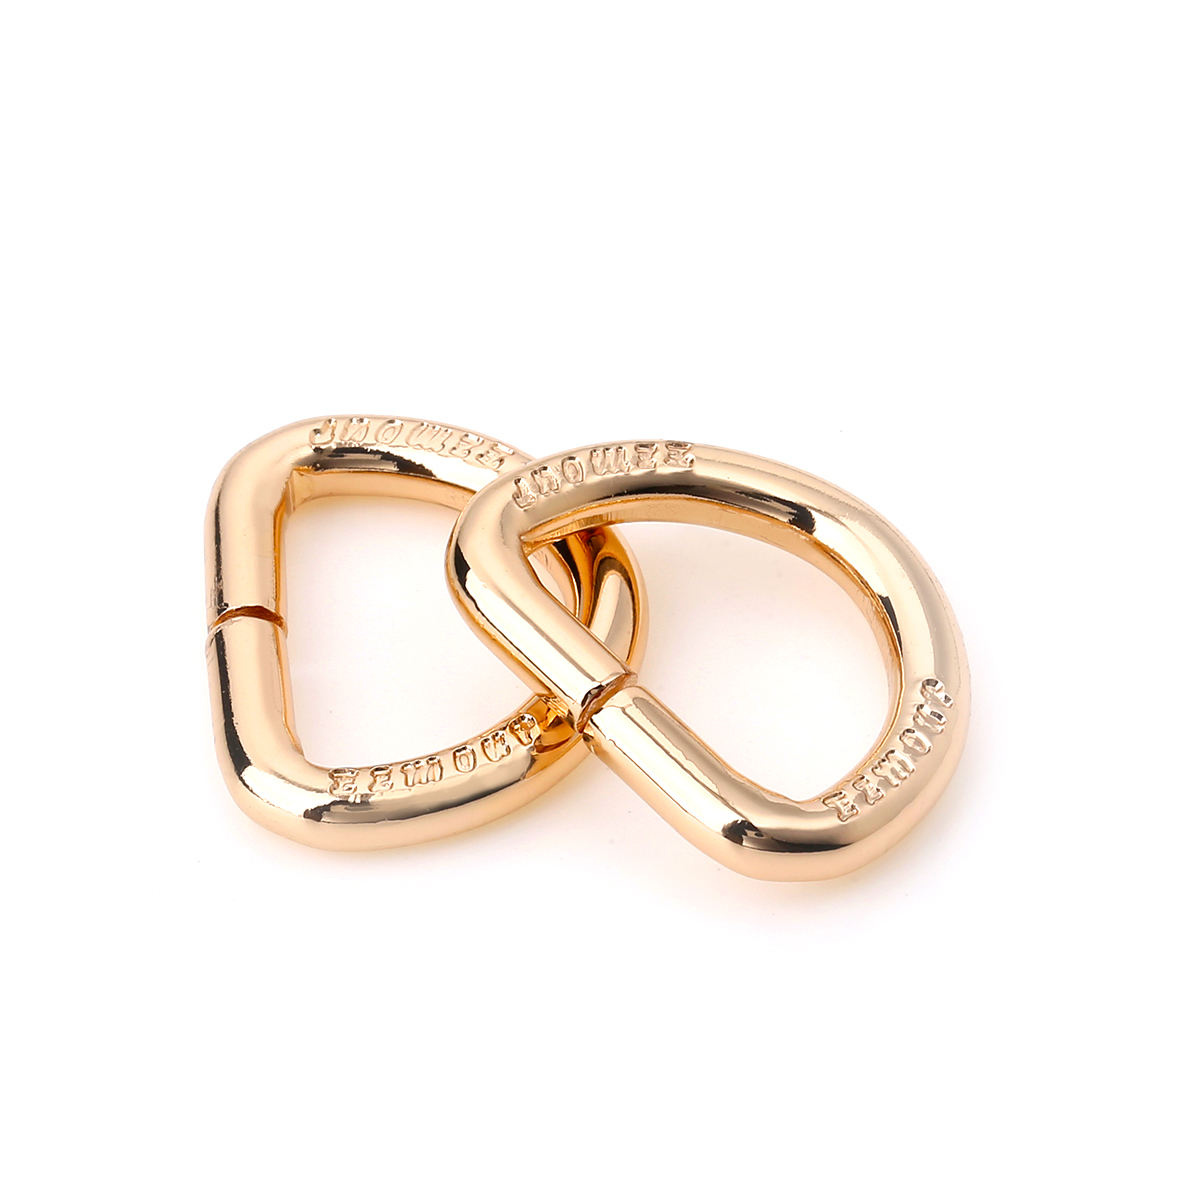 Hot sell Customized Metal D Ring For Handbags High Quality Hardware Metal D Ring Buckle Leather Bags Metal Fittings